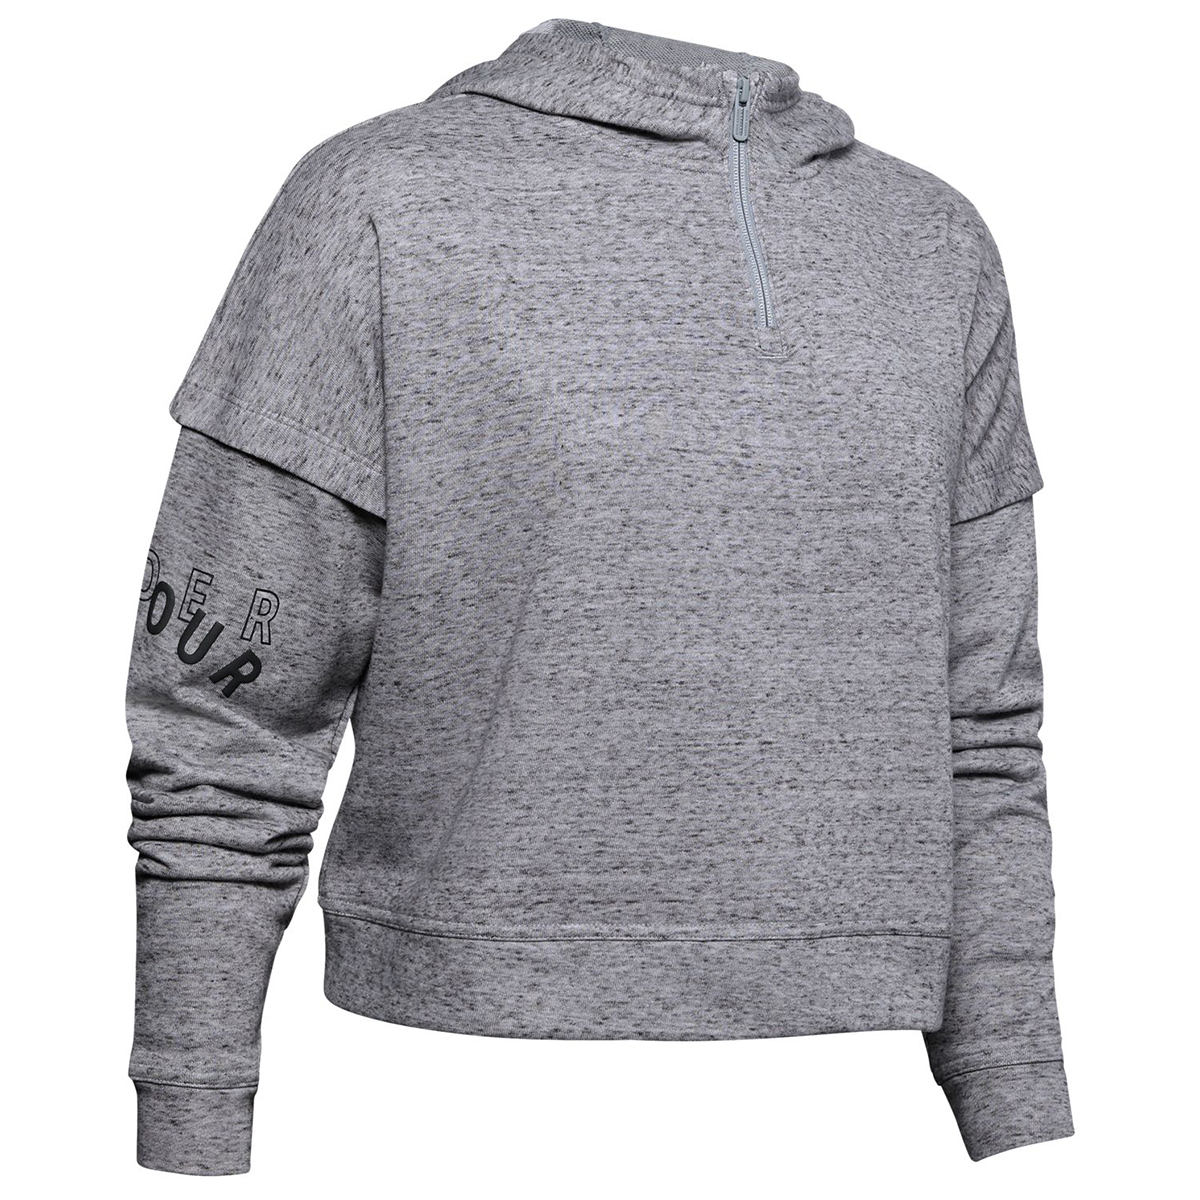 Under Armour Women's Ua Rival Terry Hoodie - Black, XL